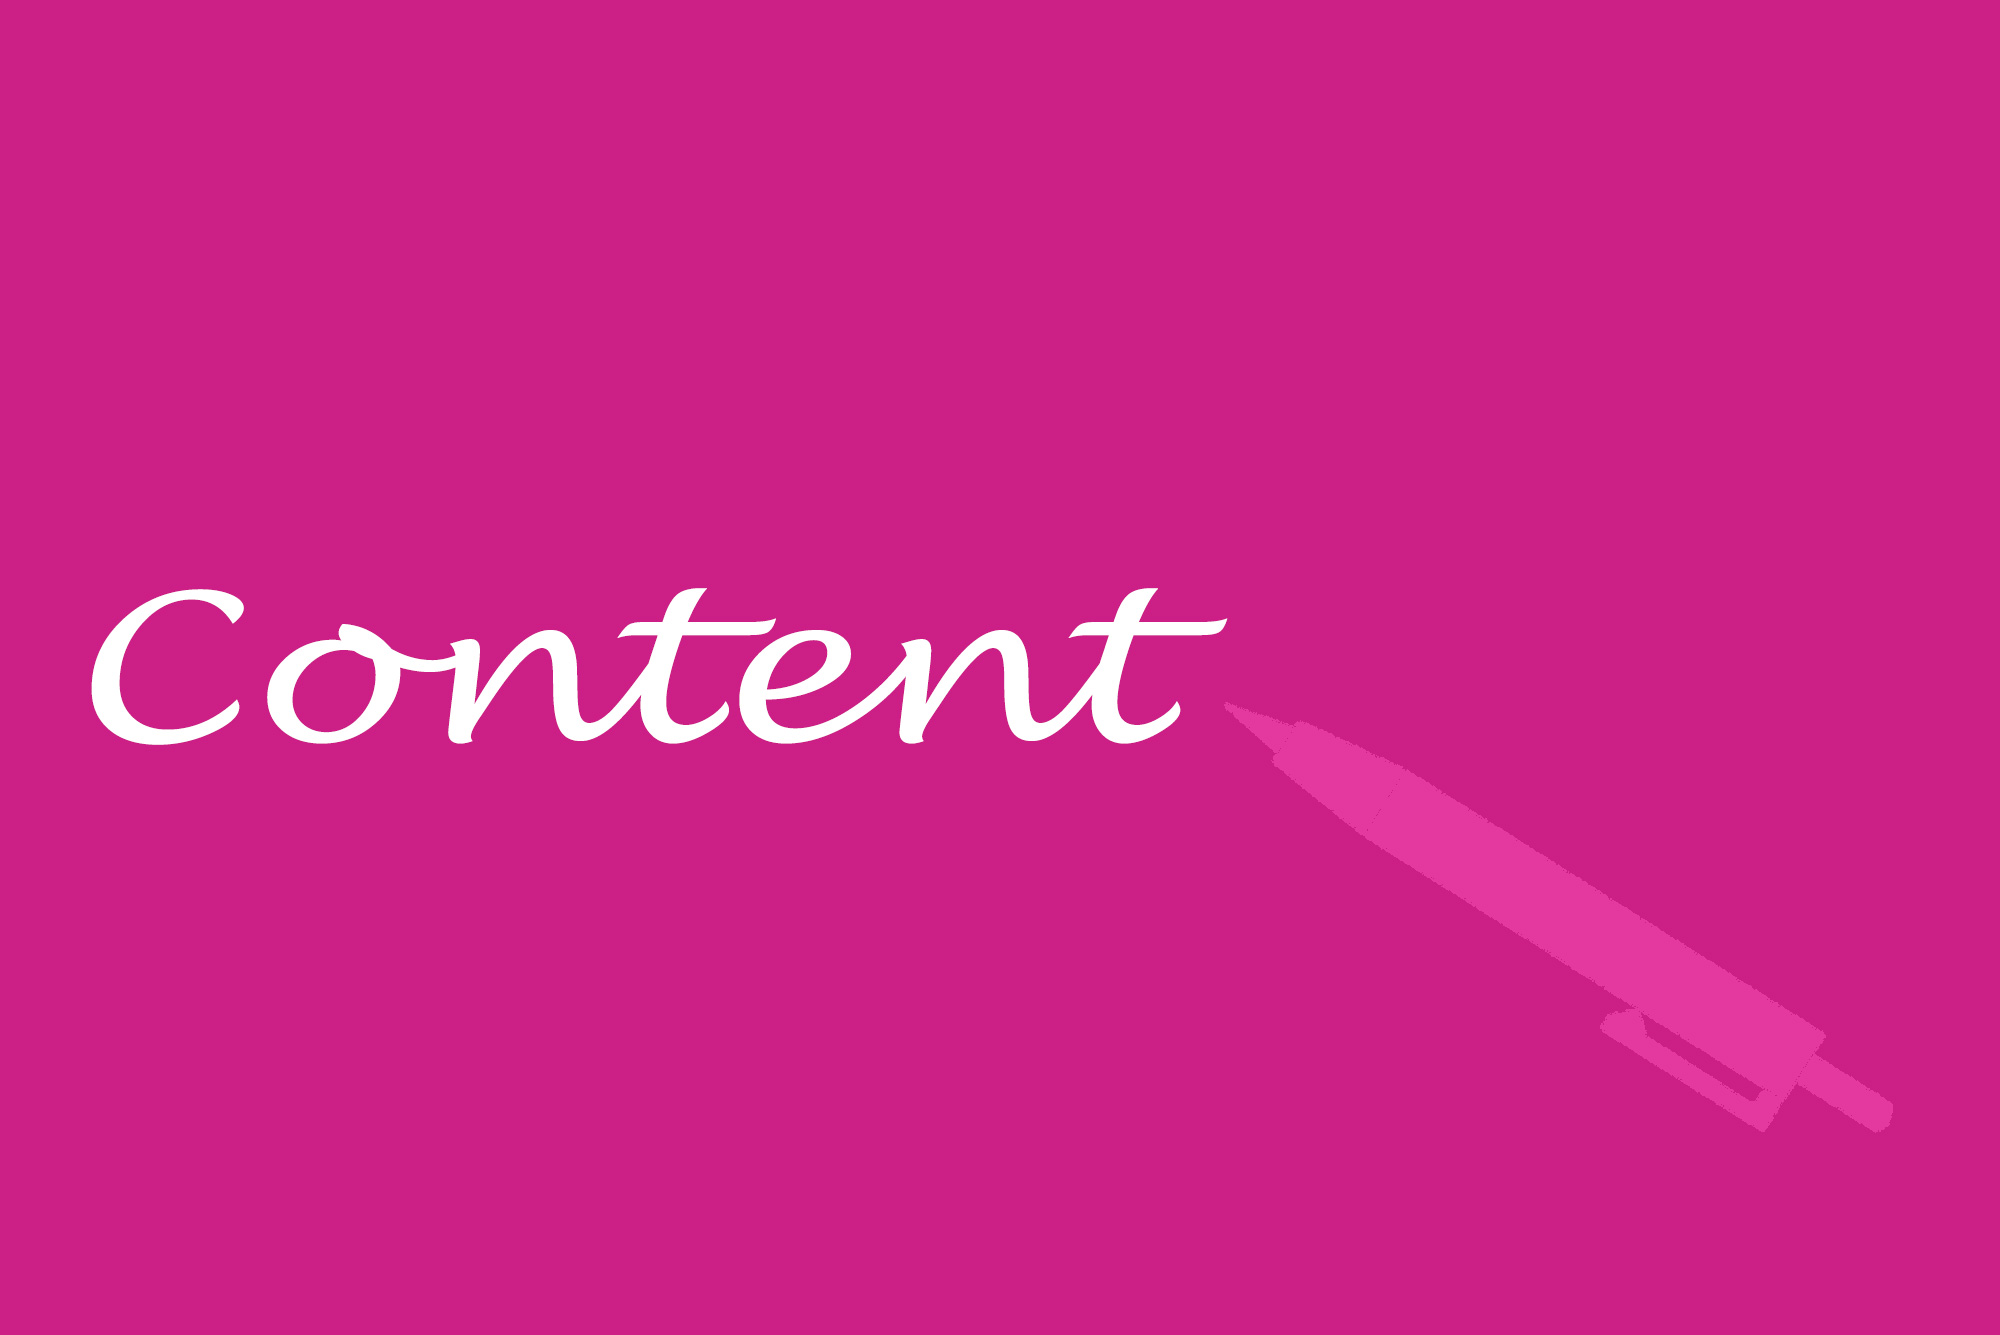 """""""Content"""" written in white, with a pink background and a light pink pen silhouette"""